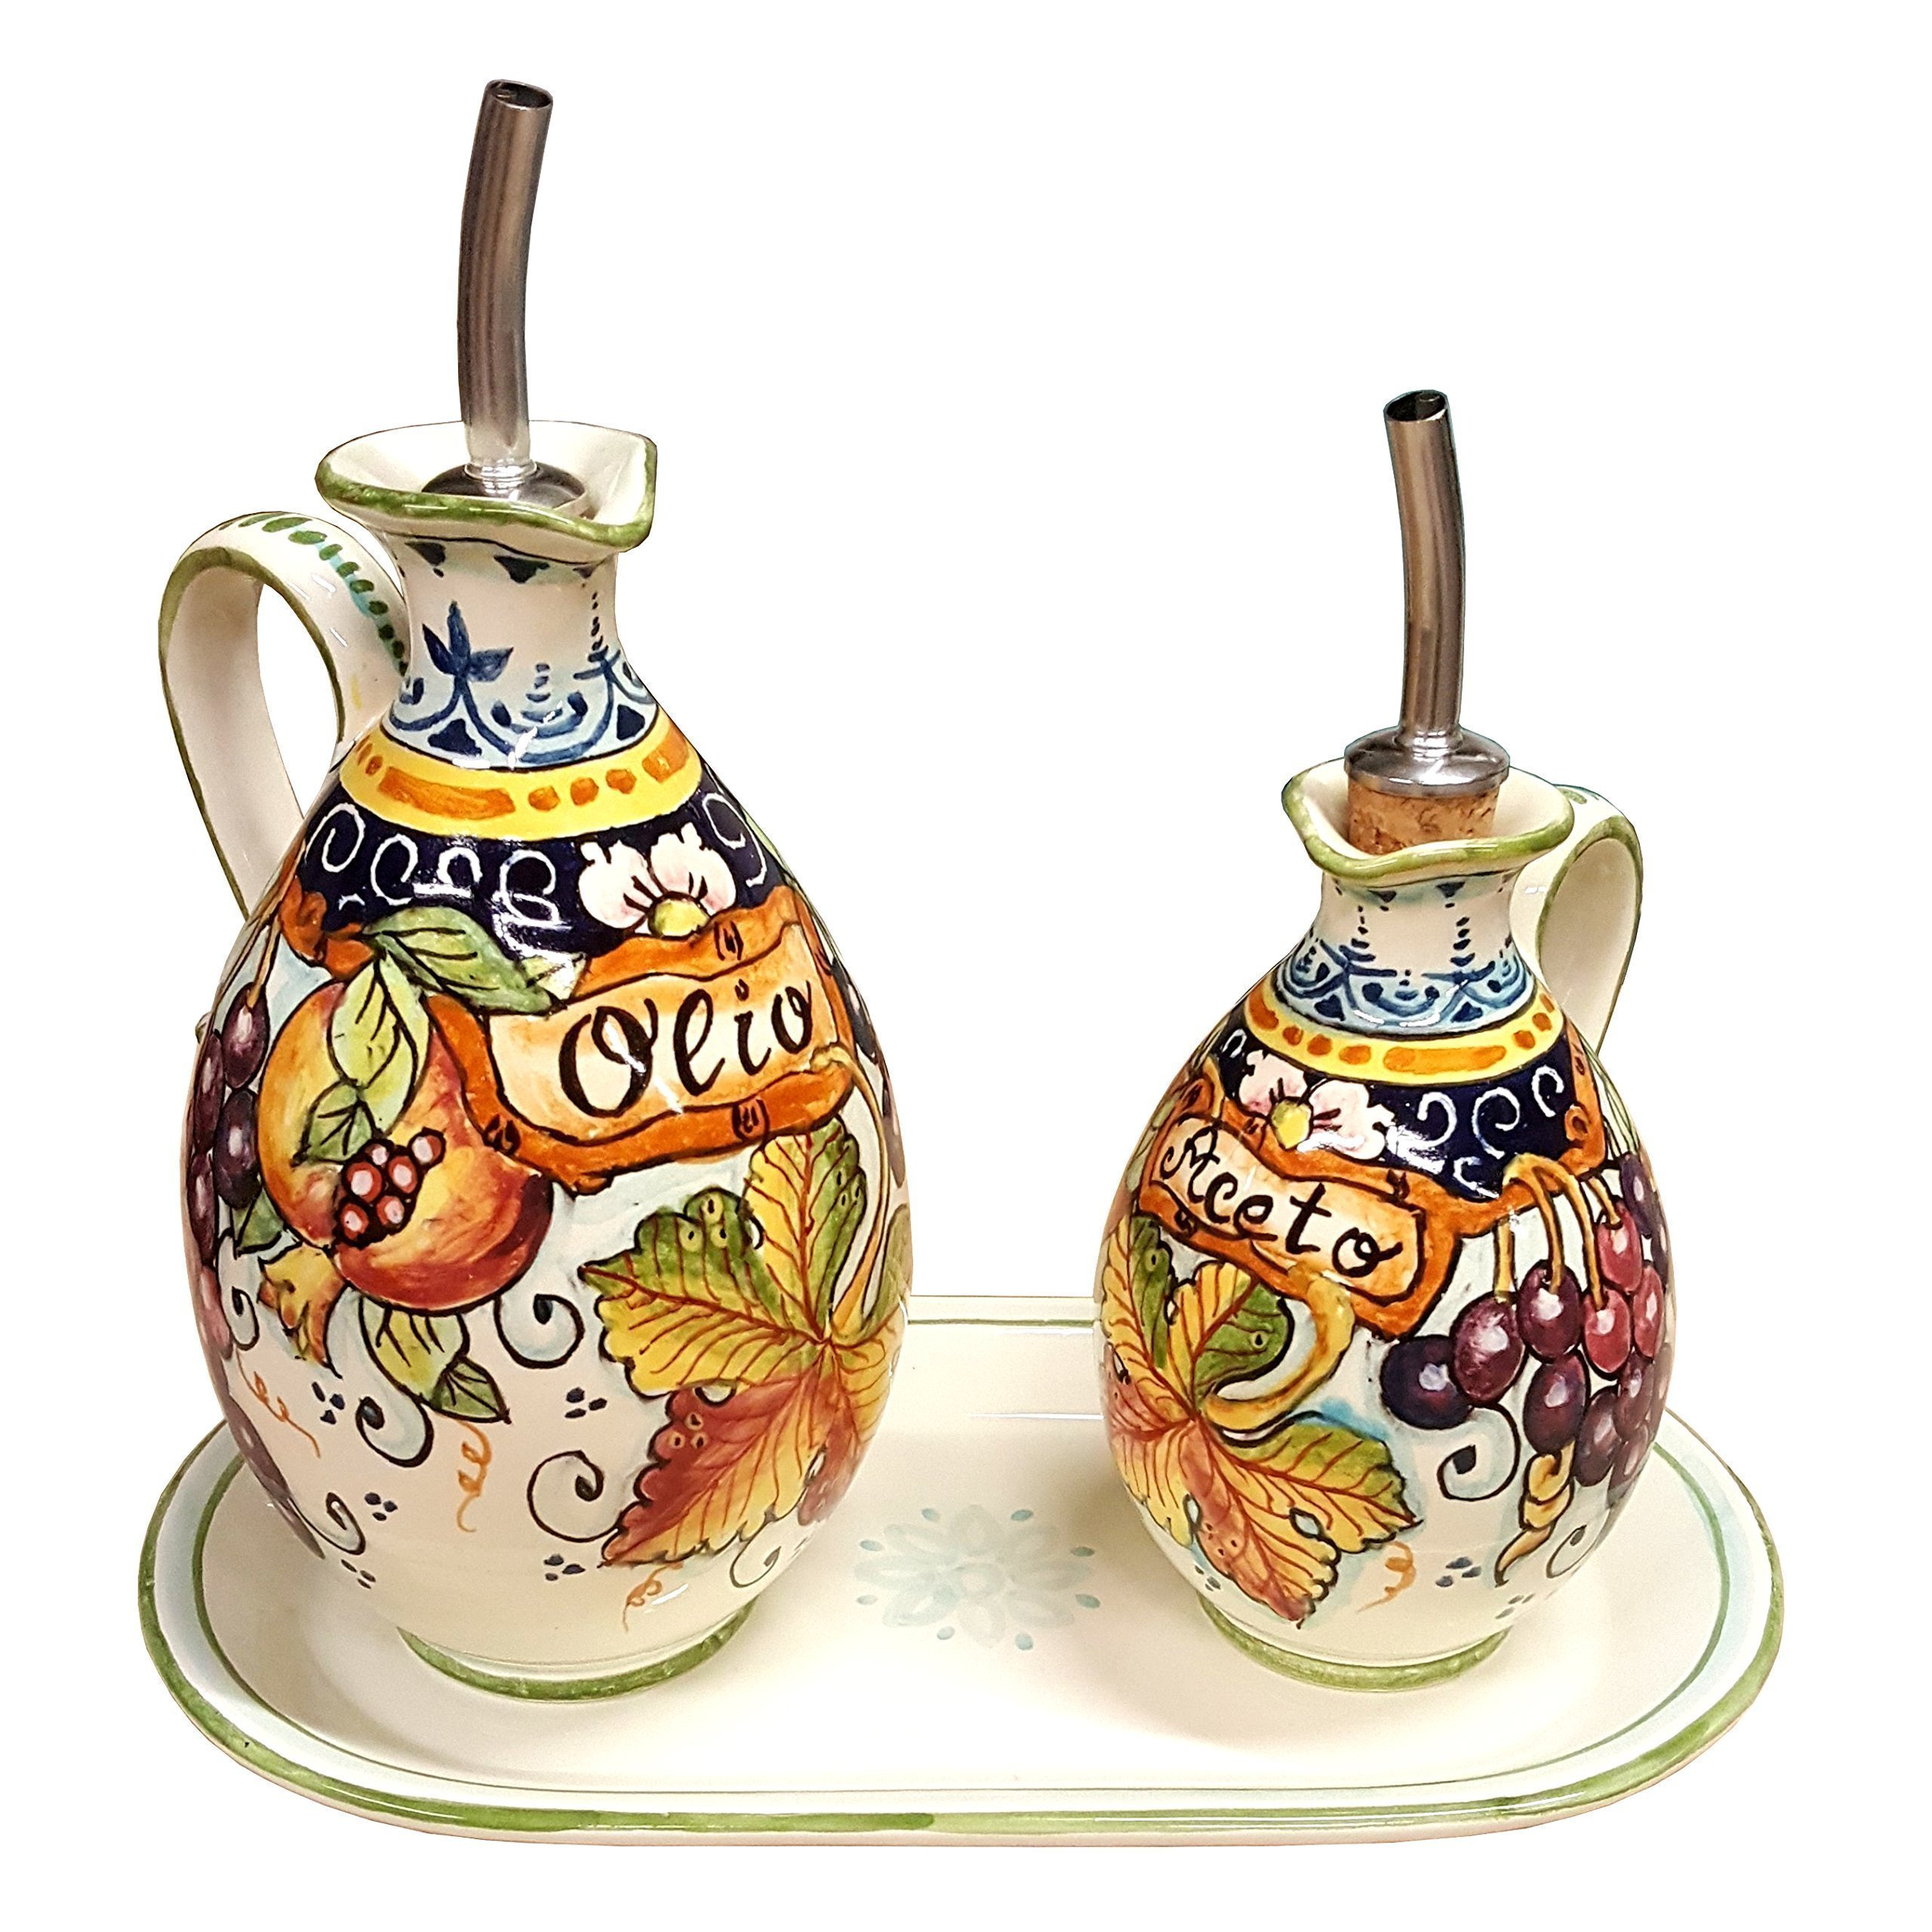 CERAMICHE D'ARTE PARRINI - Italian Ceramic Set Cruet Oil And Vinegar Art Pottery Hand Painted Made in ITALY Tuscan by CERAMICHE D'ARTE PARRINI since 1979